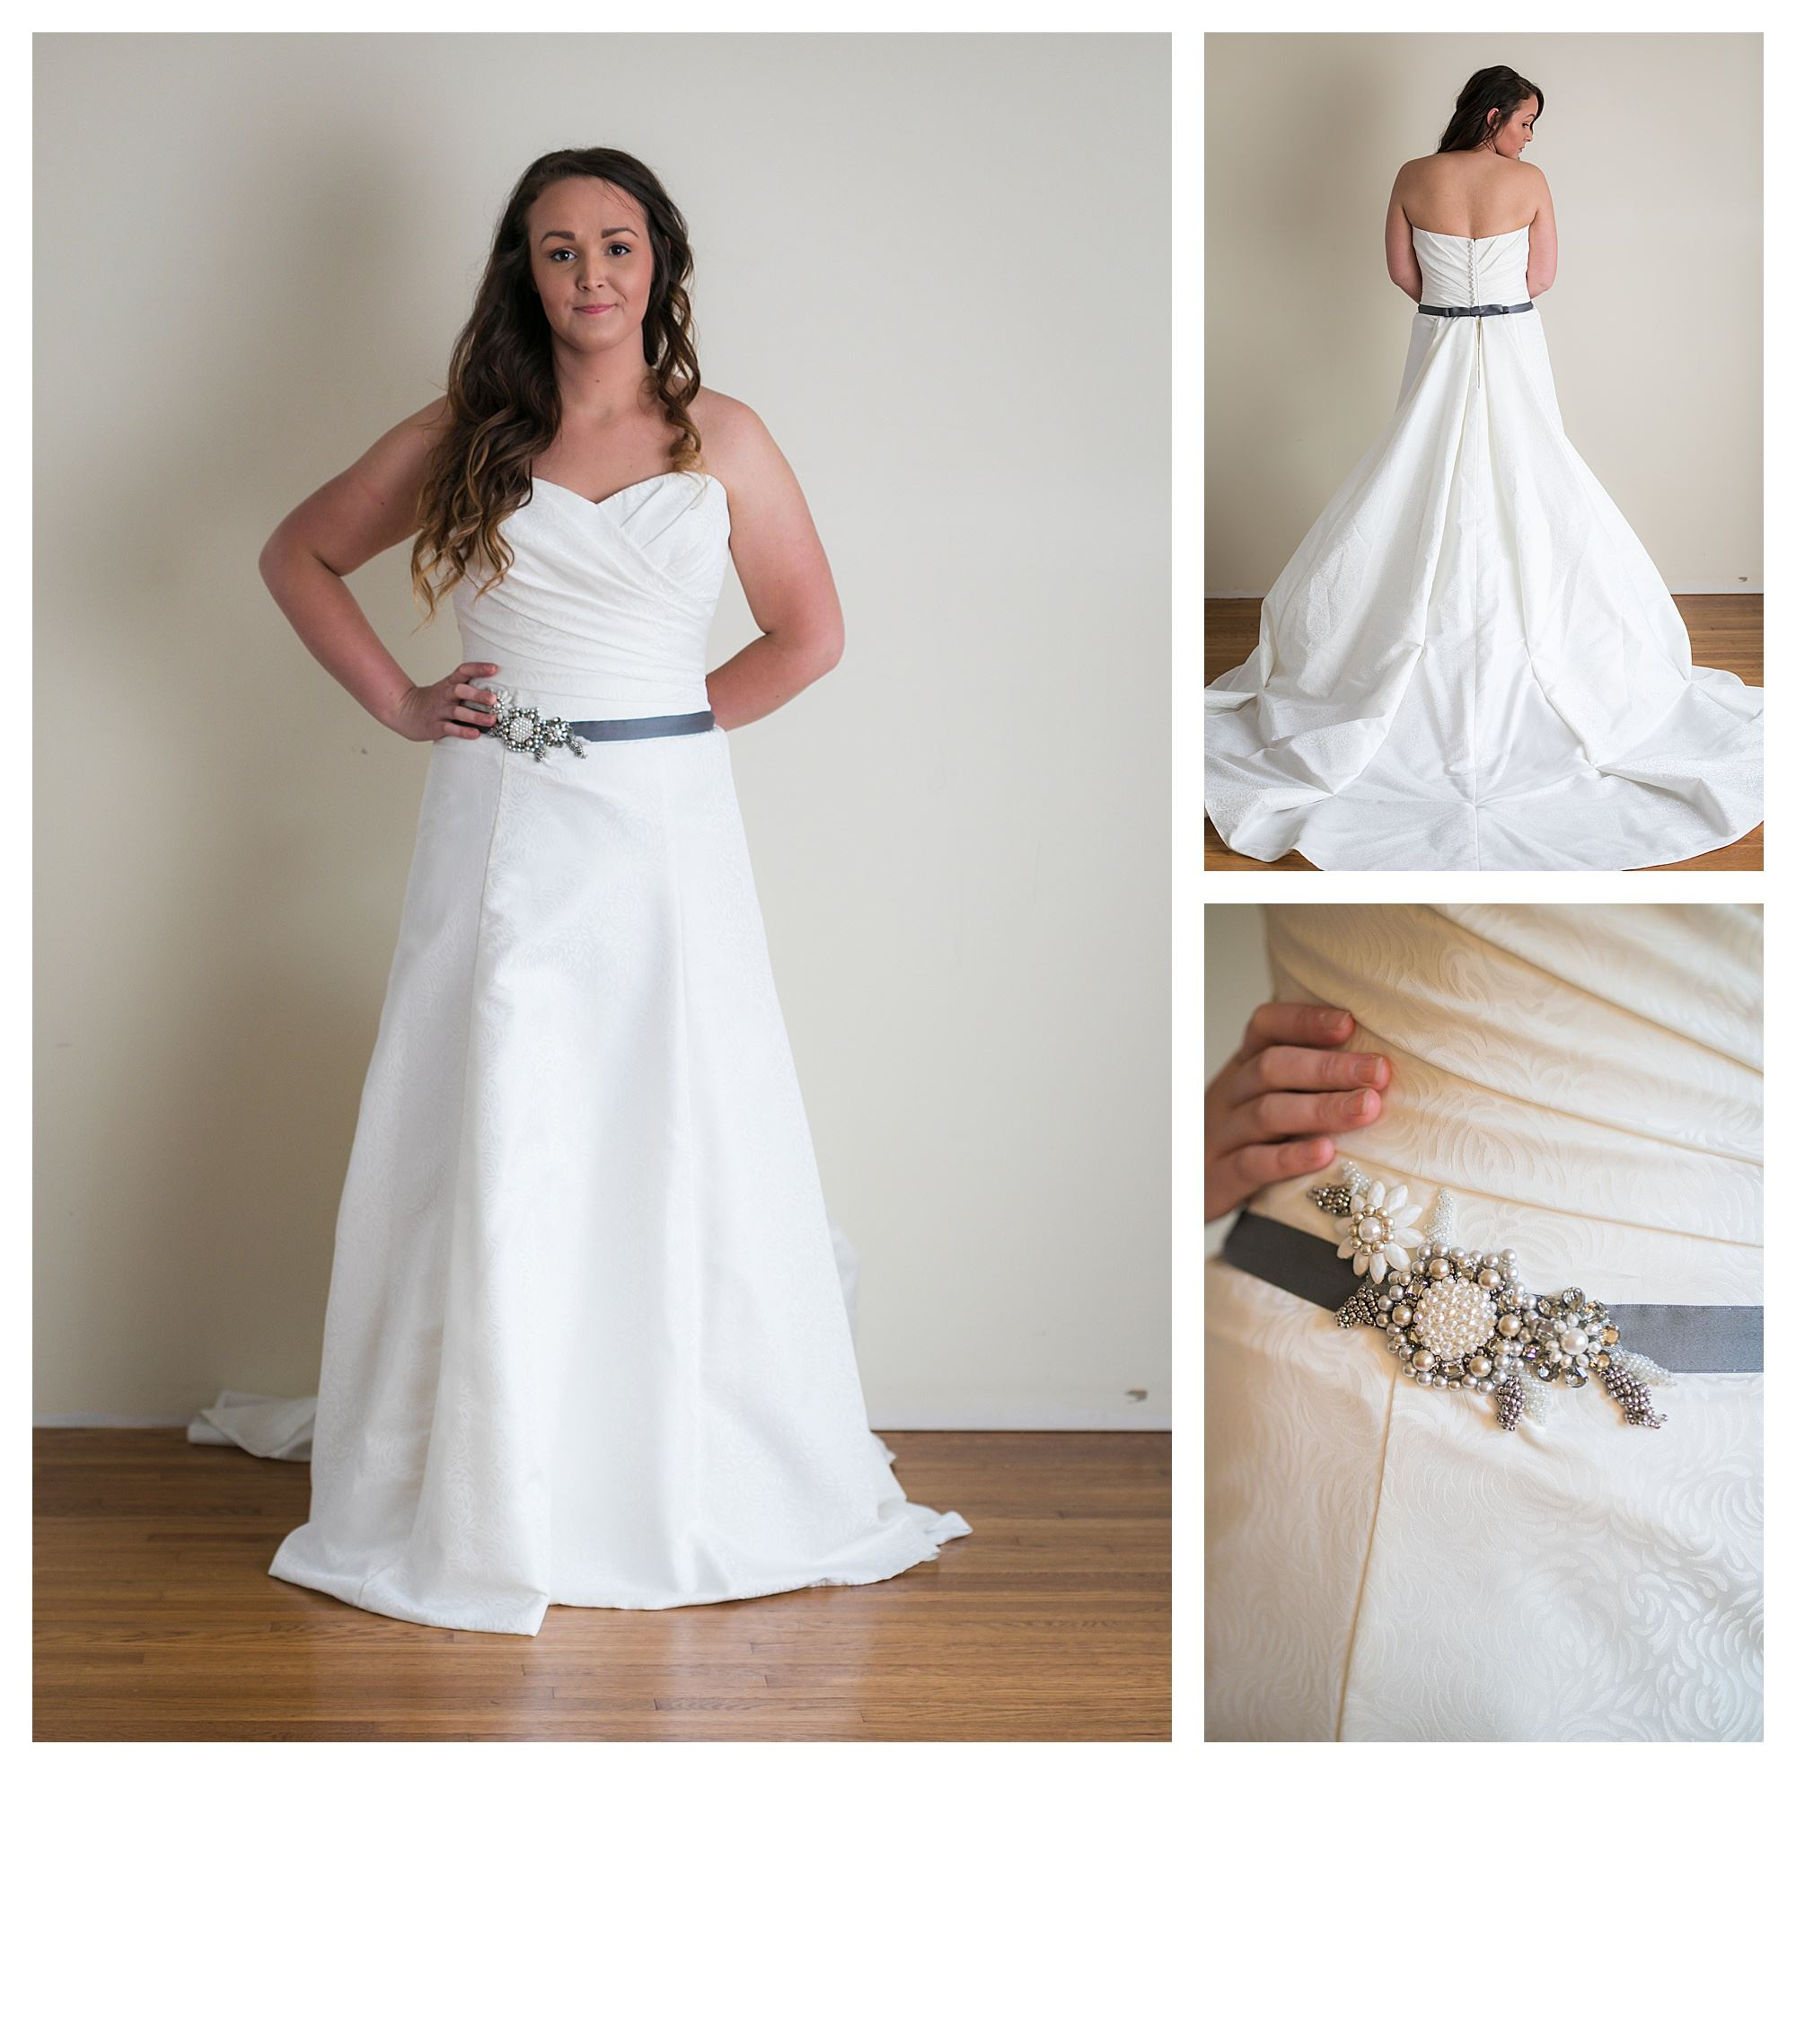 Serene - Size 12 - Ivory/Gray - Originally priced $999 - Sample box price $699